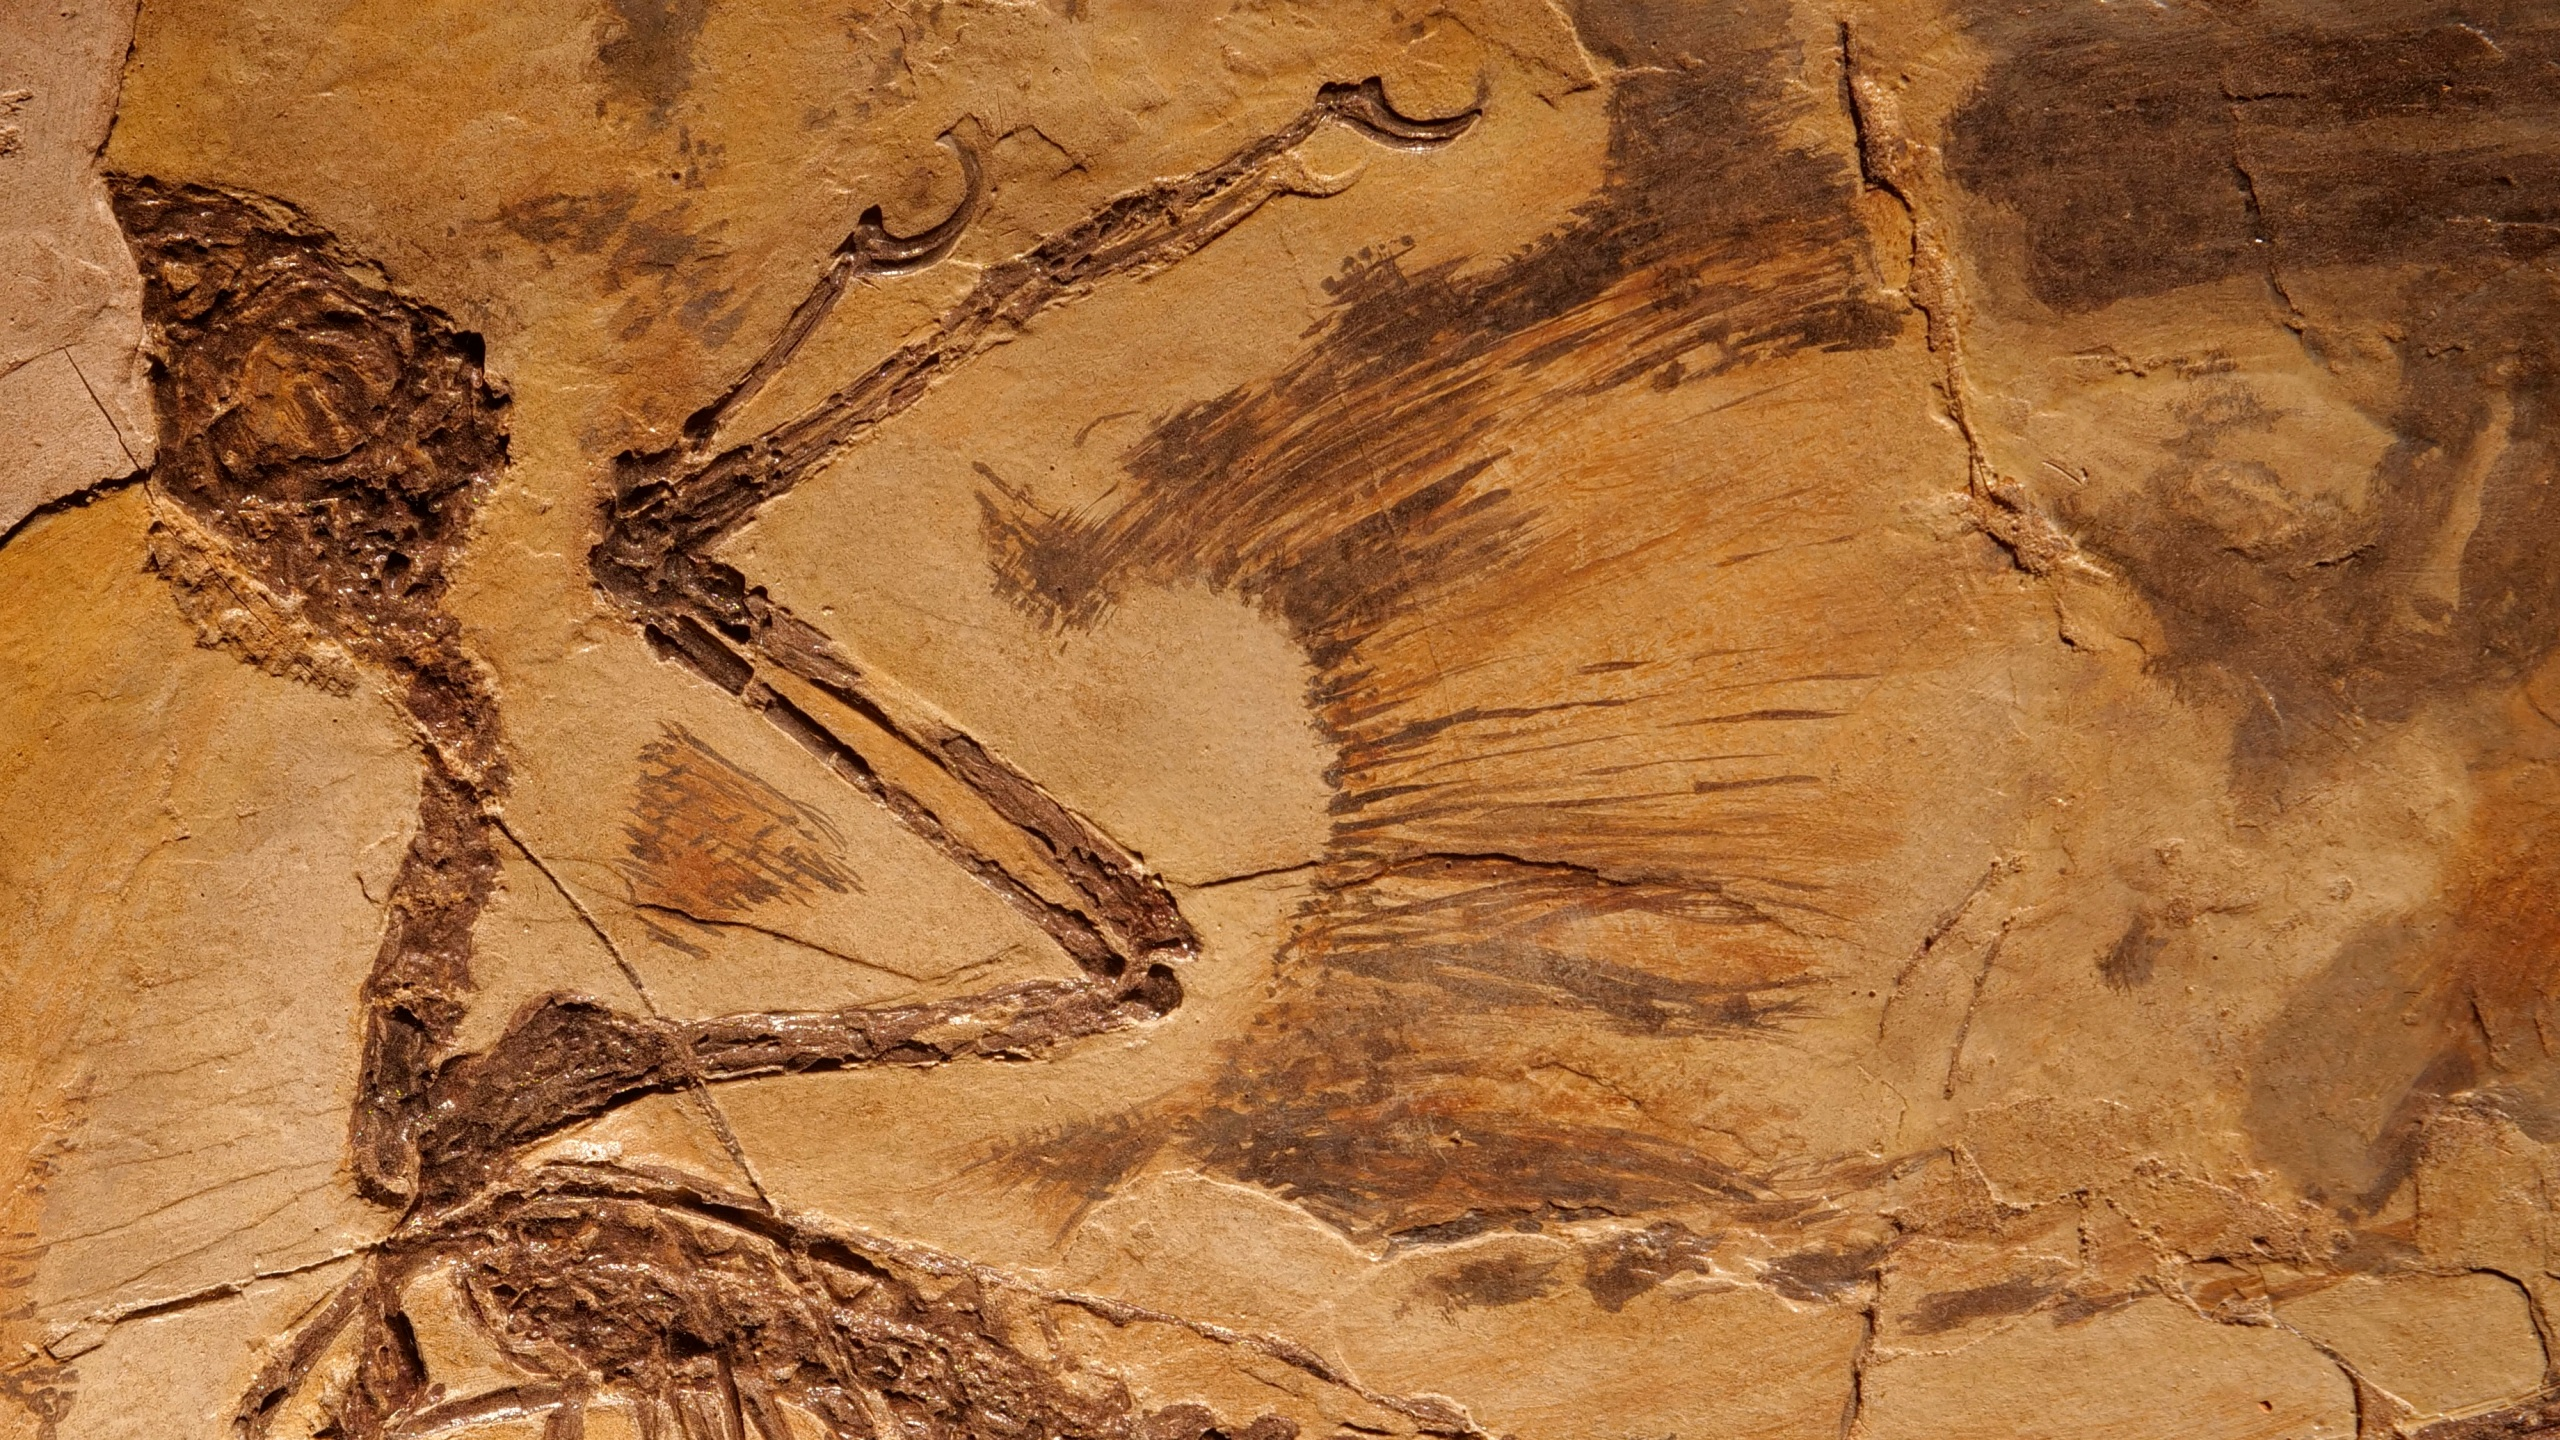 China_Dinosaur_Fossil_Hunter_36746-159532.jpg03792708